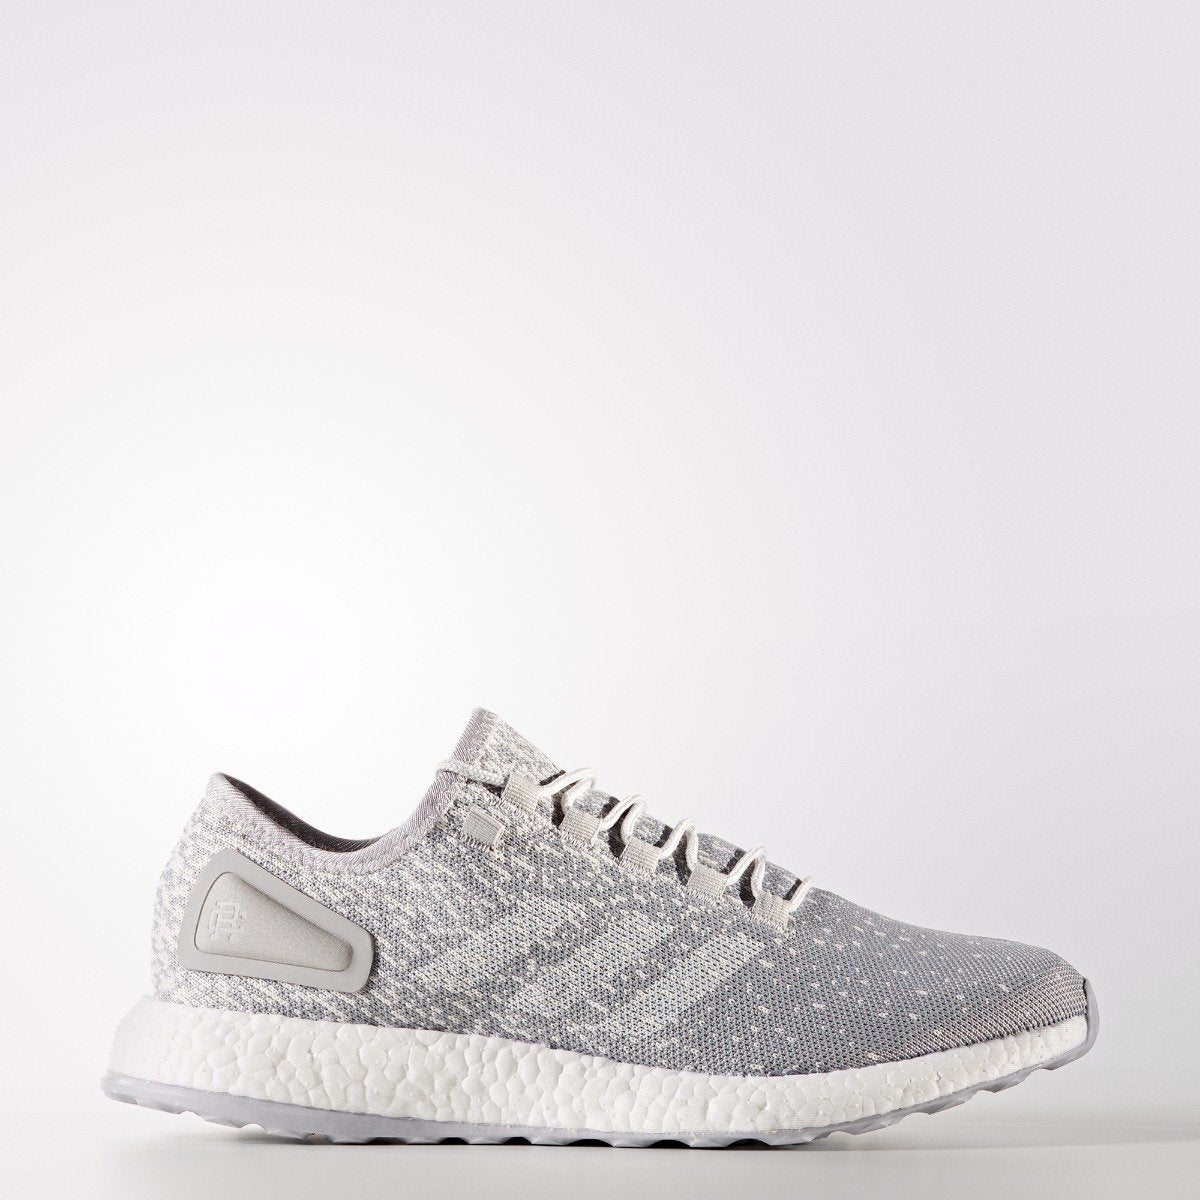 741f8e8f2 Men s adidas x Reigning Champ PureBOOST Shoes Grey CG5330